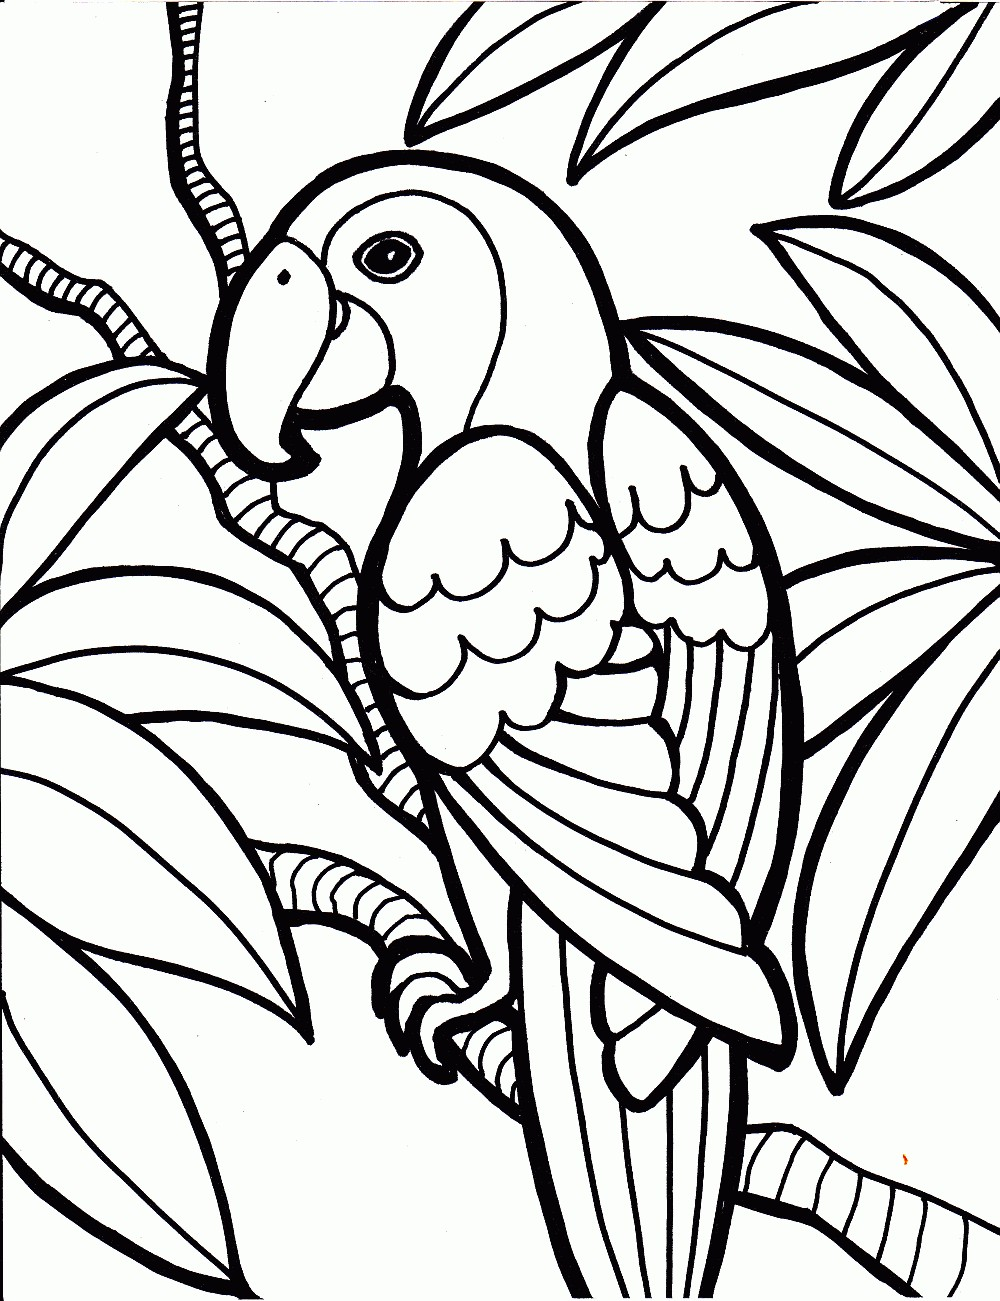 parrot birds coloring page - Coloring Pages Kids Printable